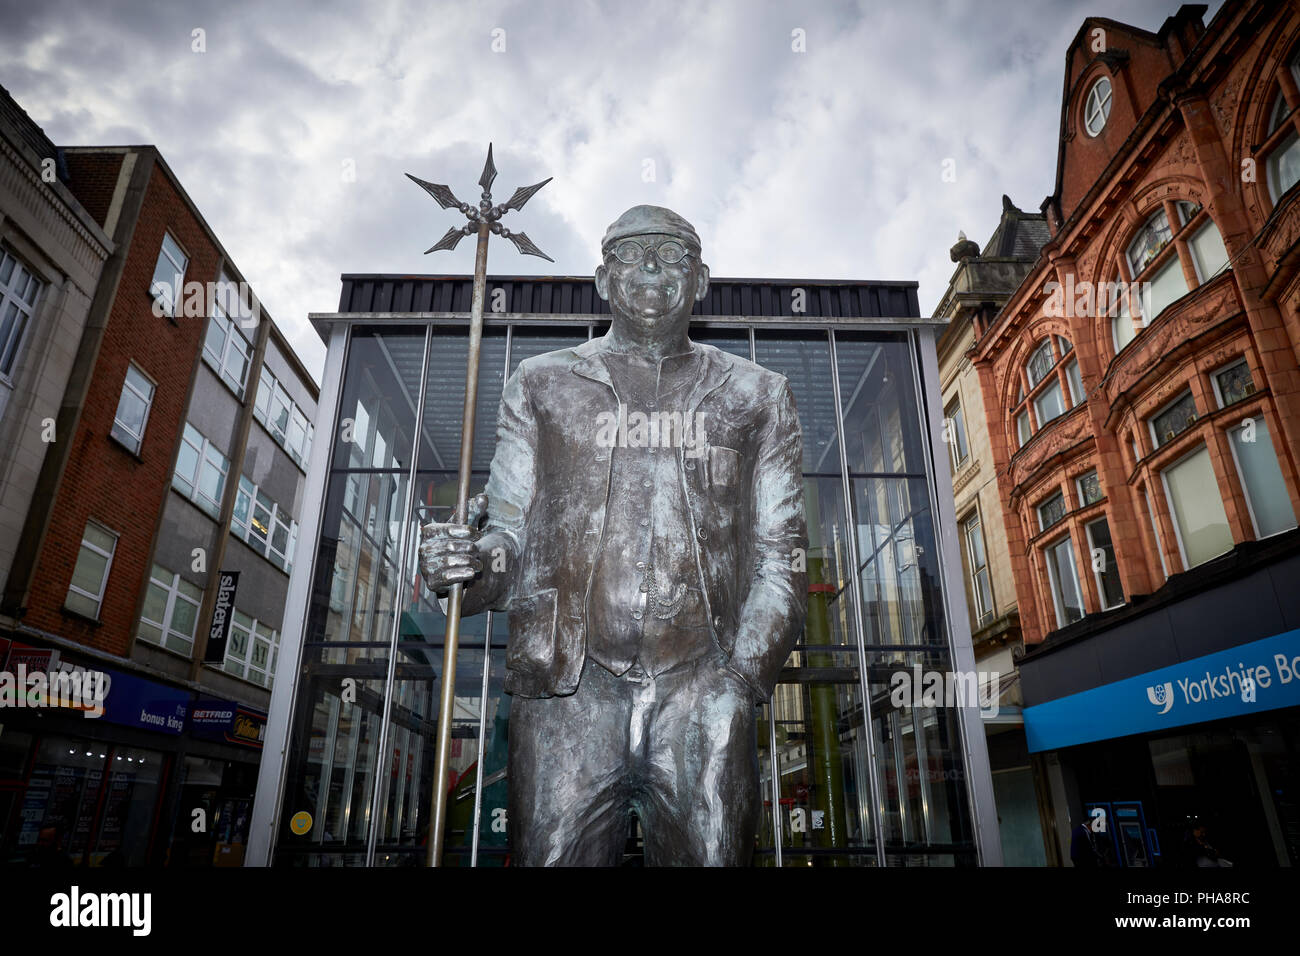 lancashire landmark bronze statue by created by Jane Robbins of steeplejack television personality Frederick Dibnah, MBE statue  Bolton town centre - Stock Image